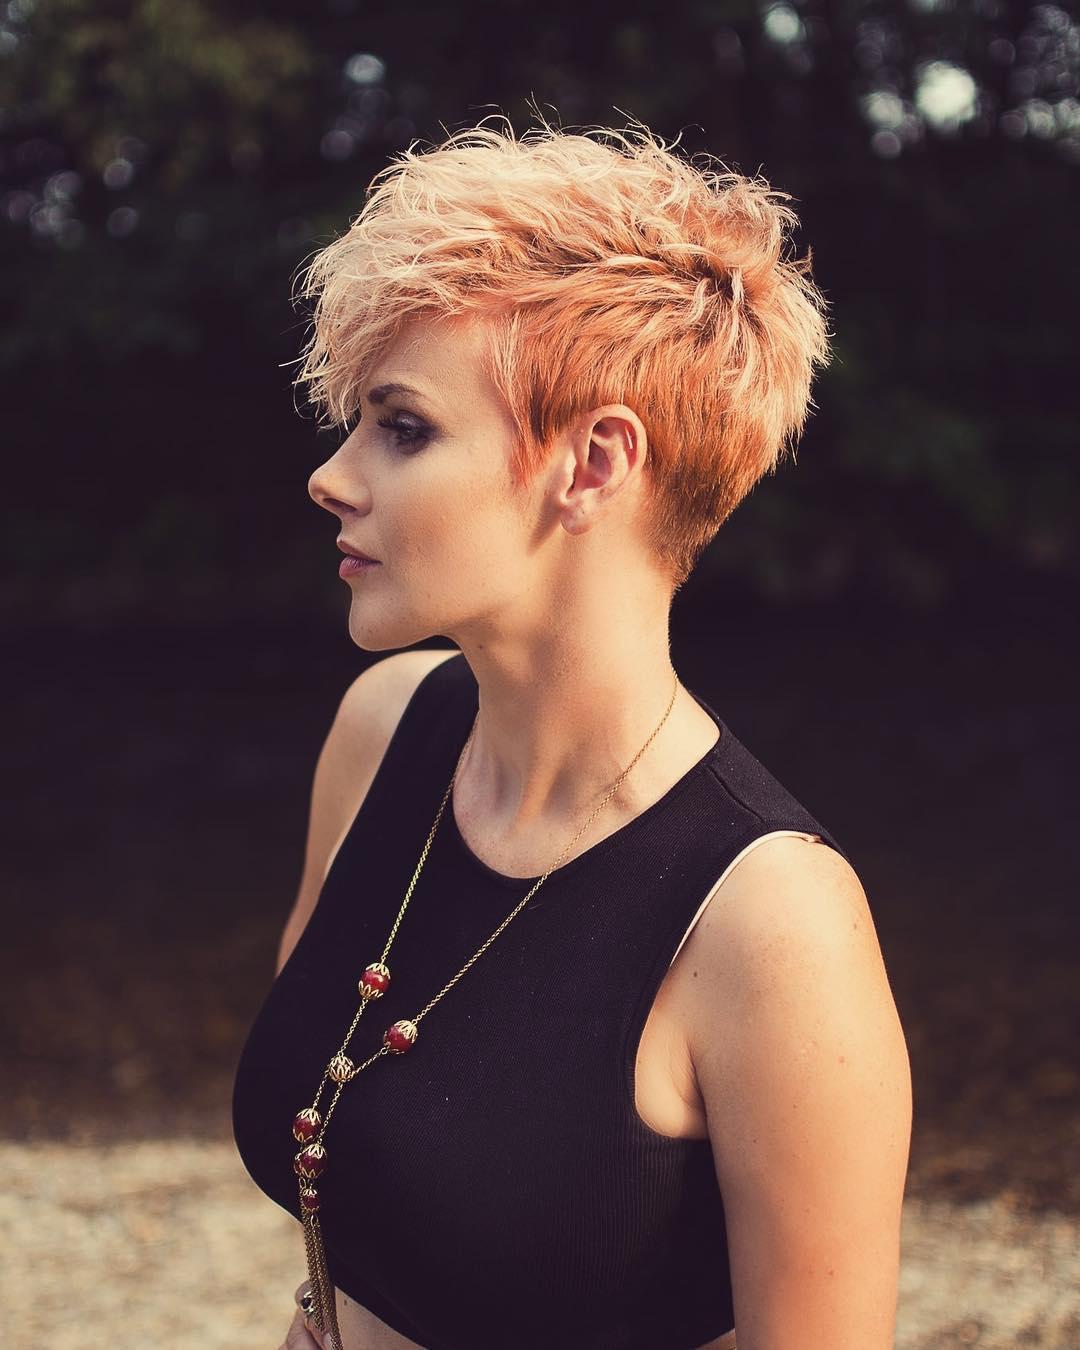 Stylish Hairstyle For Short Hair 10 Peppy Pixie Cuts Boy Cuts Girlie Cuts To Inspire 2019